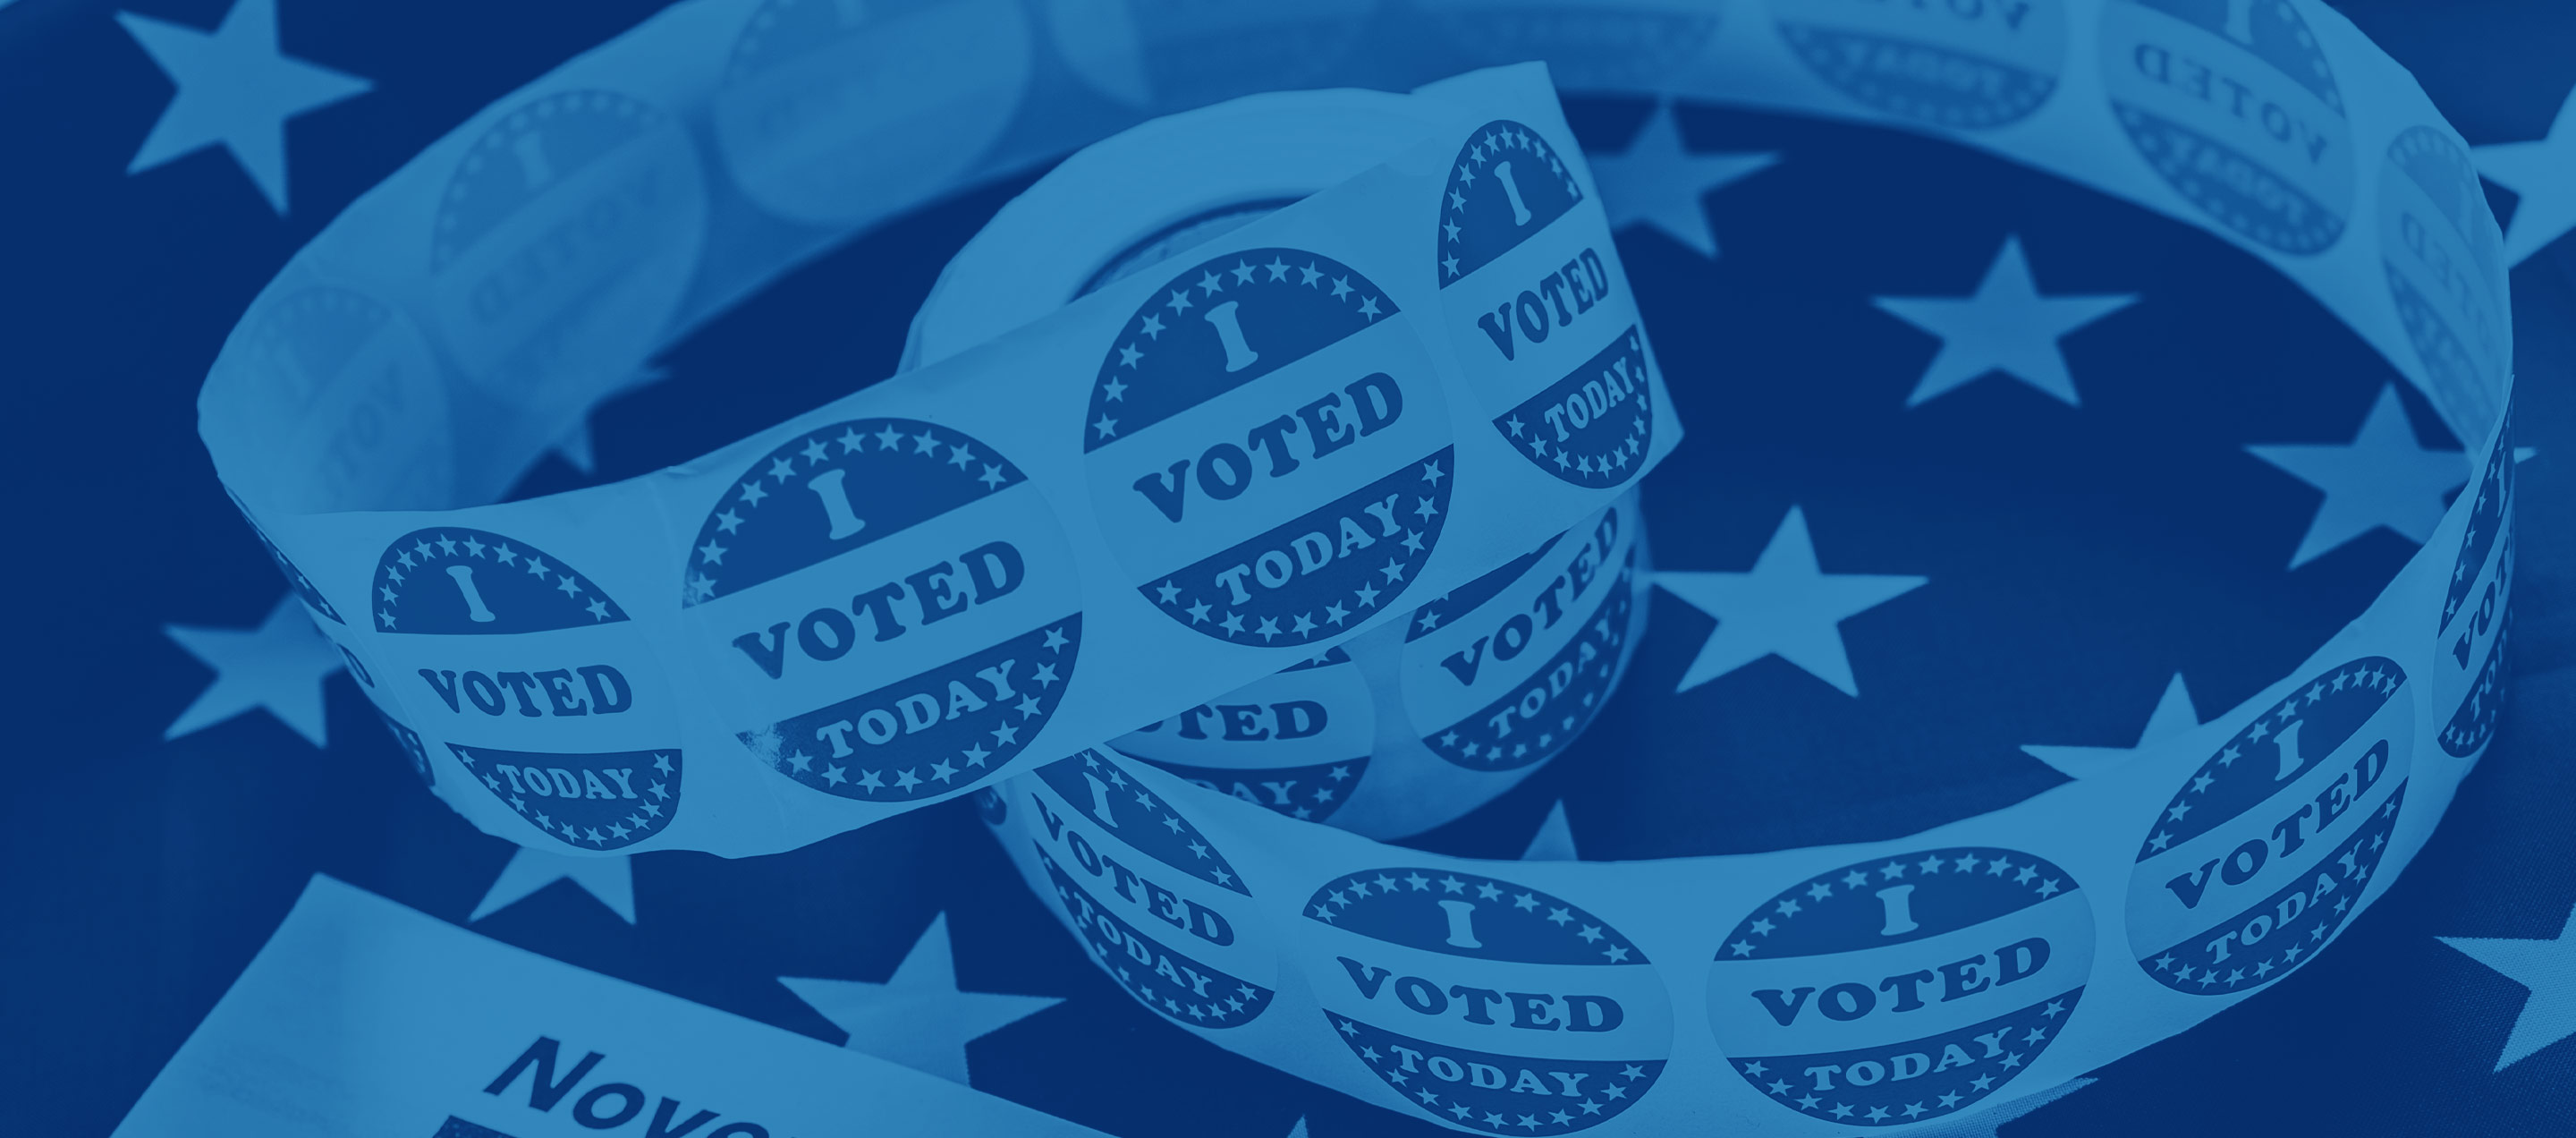 Facebook Implements New Political Guidelines for Election Season